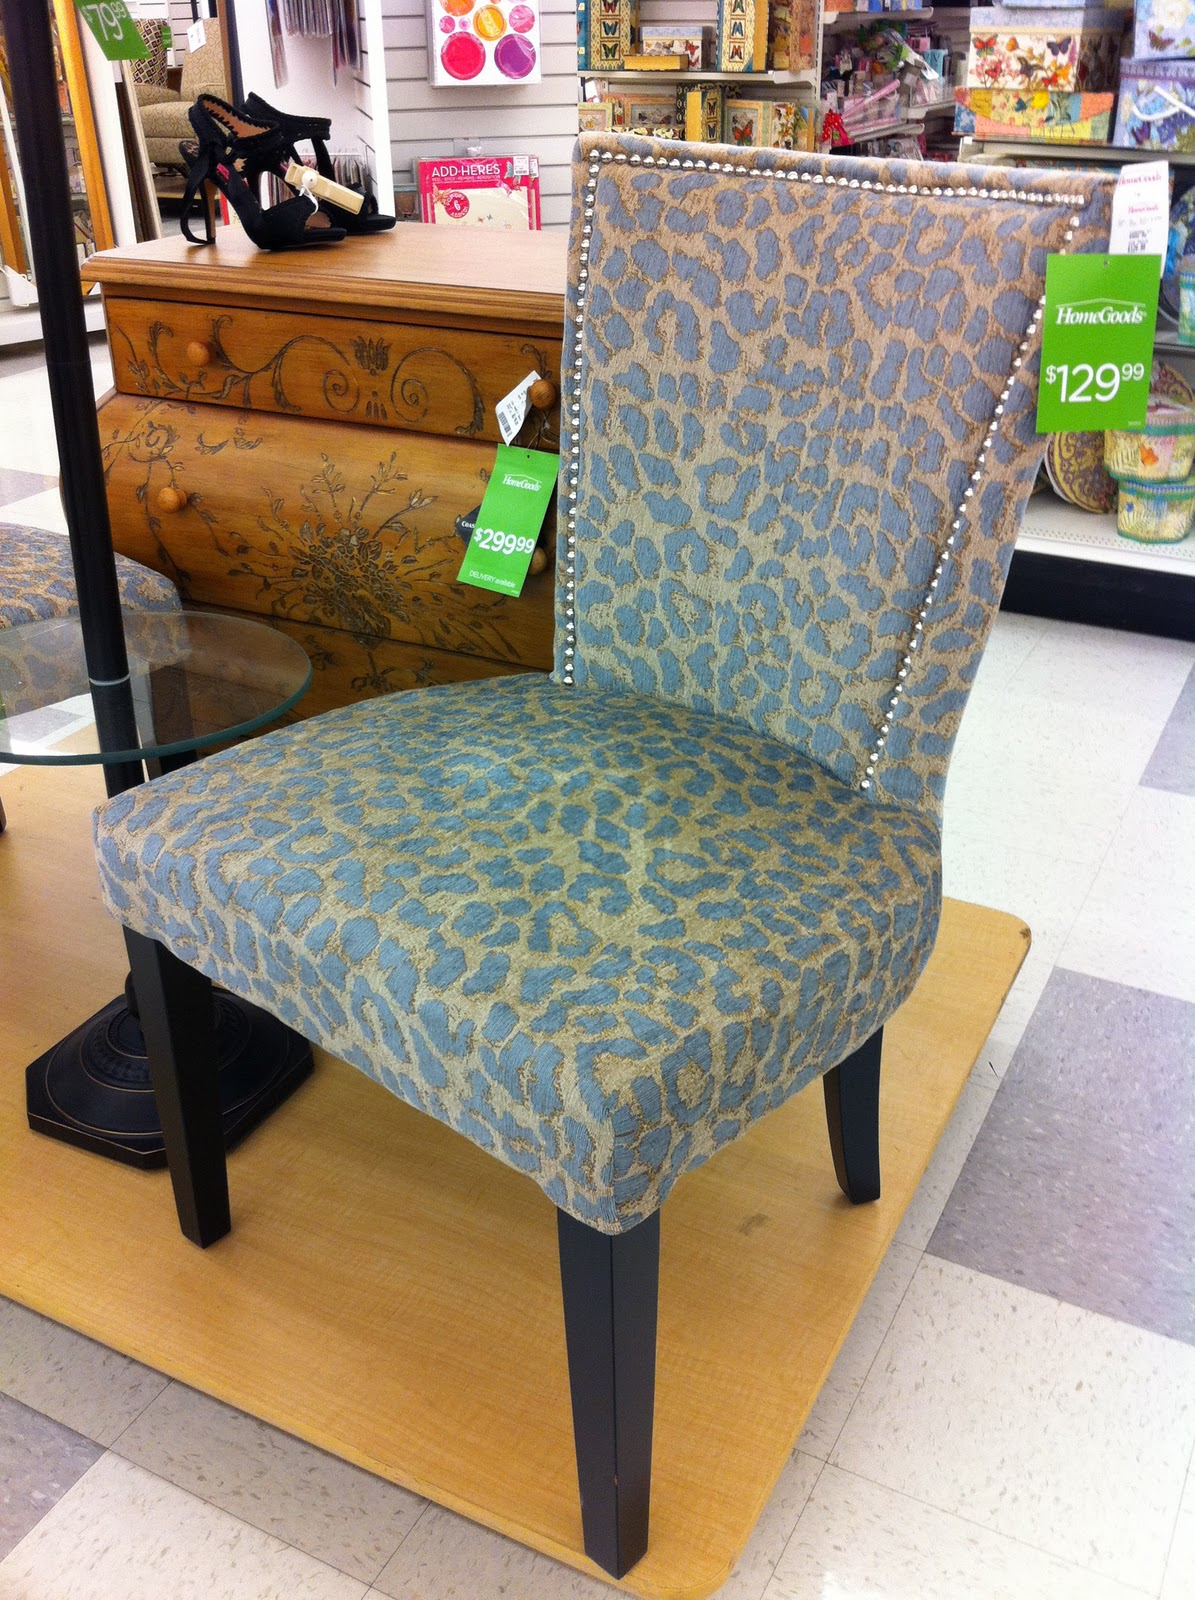 Superieur Luxurious Dining Chair With Light Blue Patterns Designed By TJ Maxx